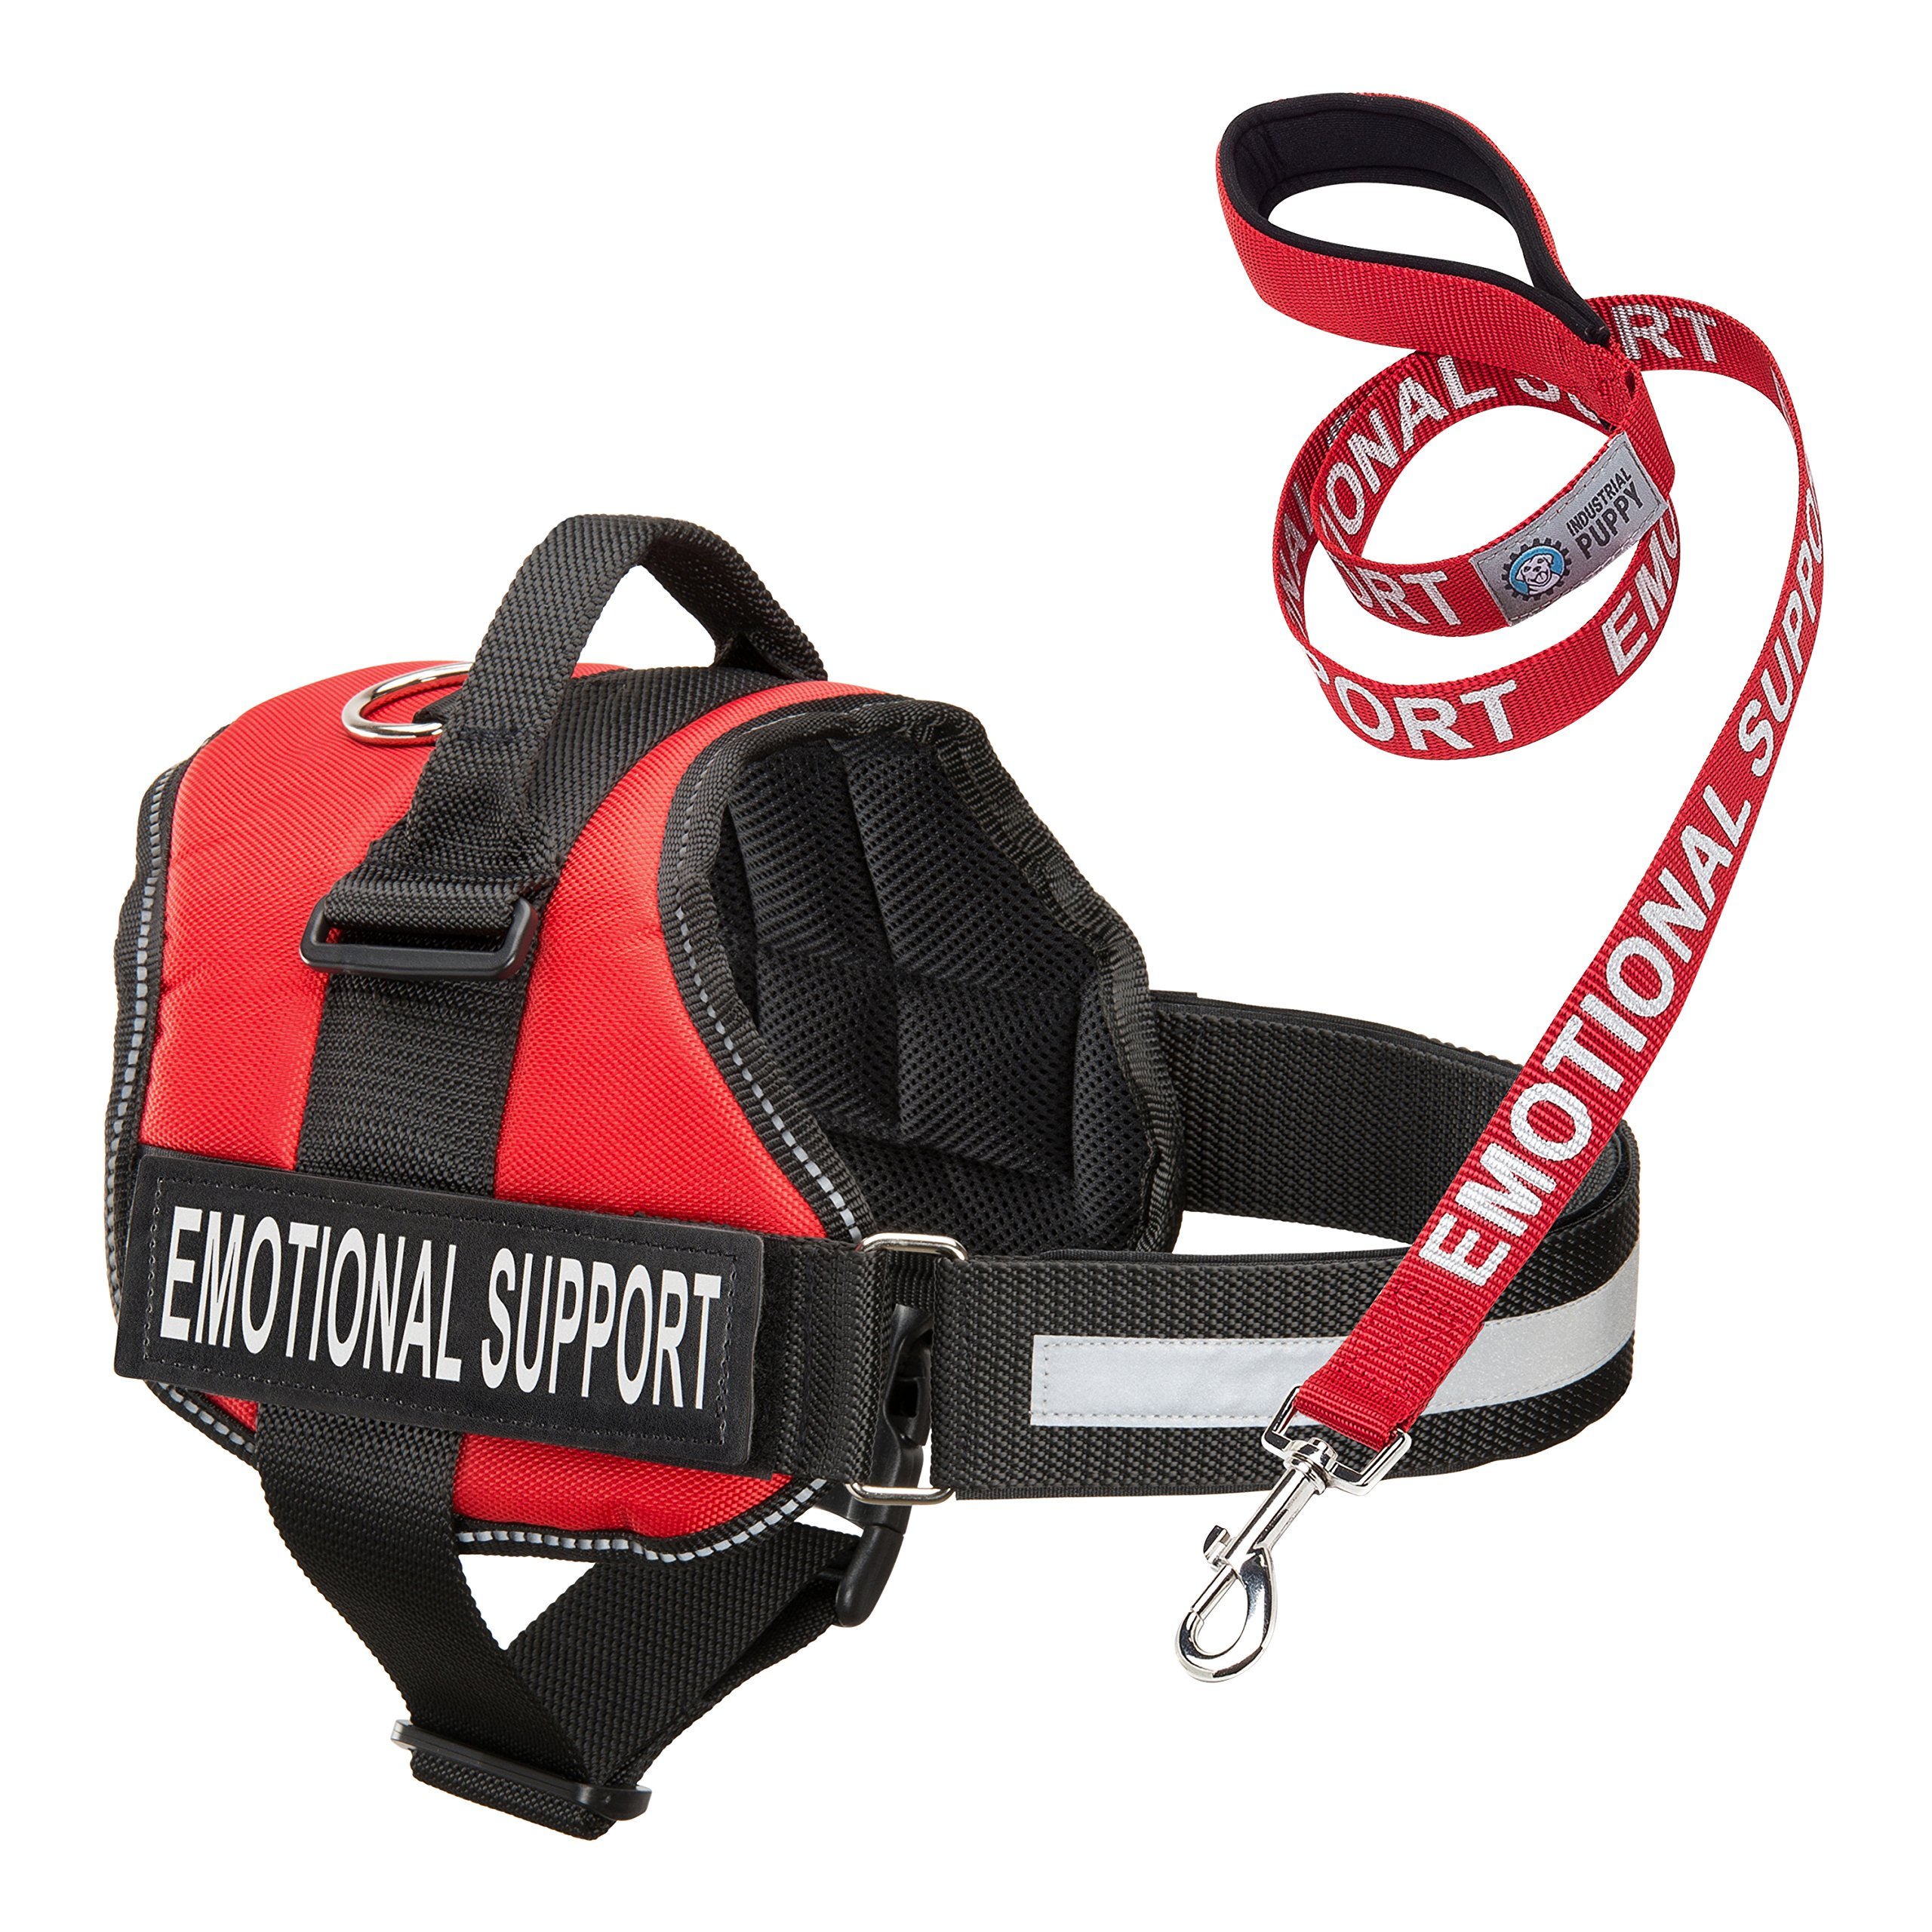 Service Dog Vest Harness with EMOTIONAL SUPPORT Patches and Matching Leash, Emotional Support Animal Vest and Matching Leash Set (XS, Red)